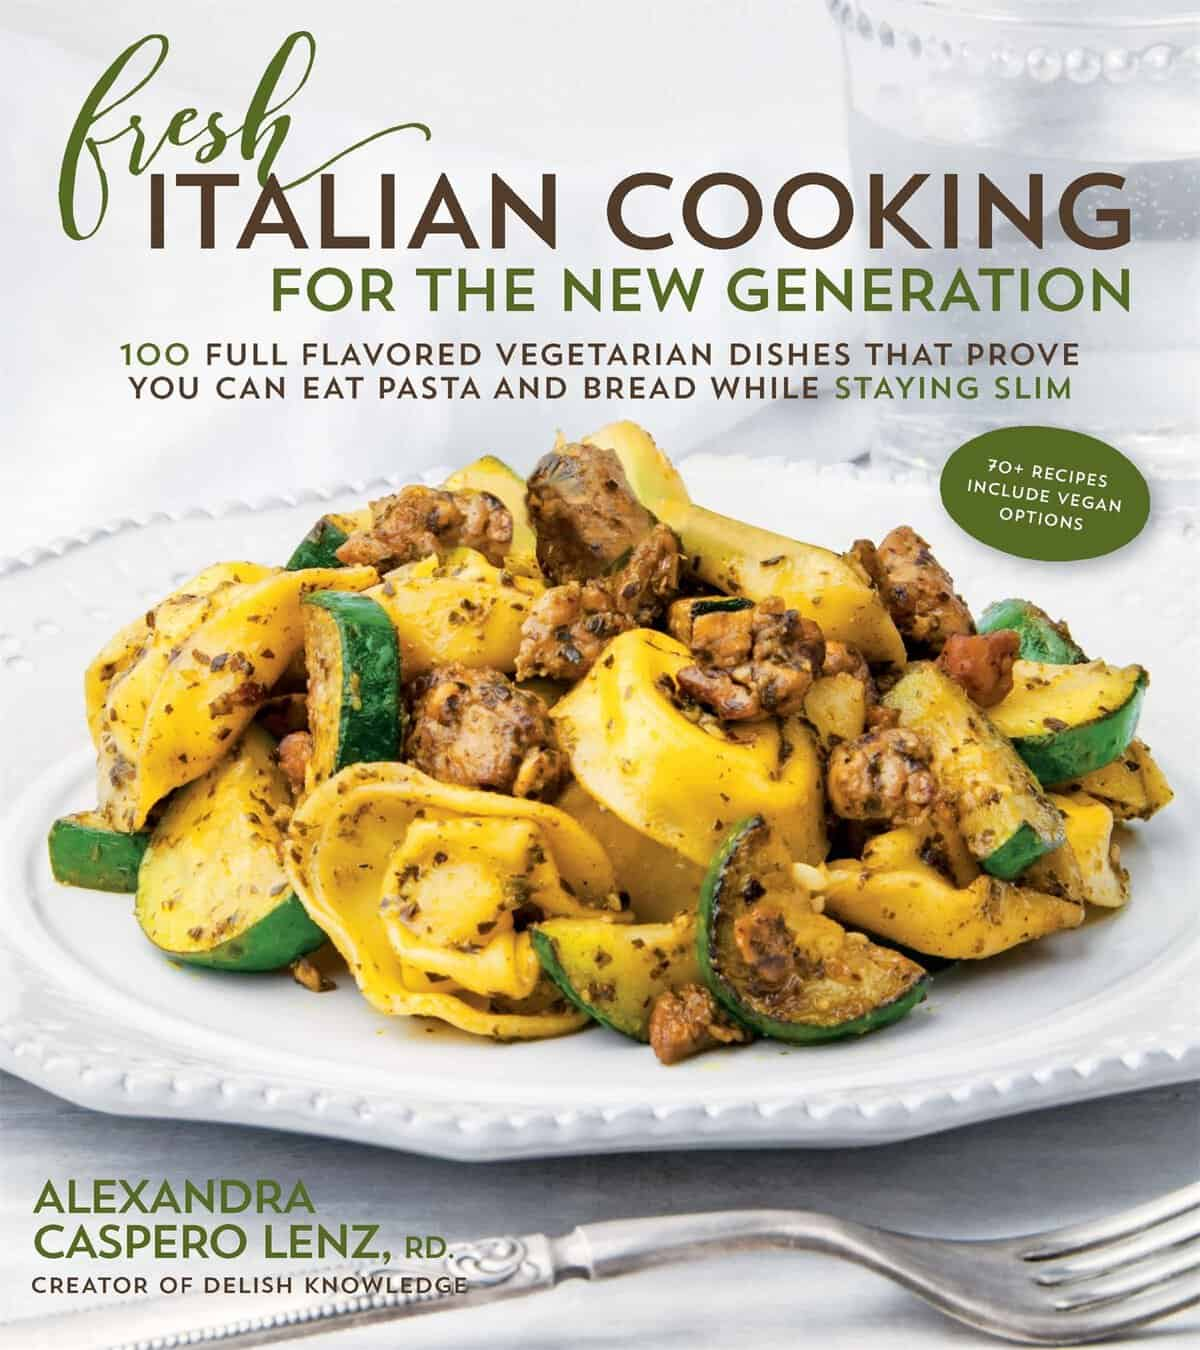 Fresh Italian Cooking cookbook cover